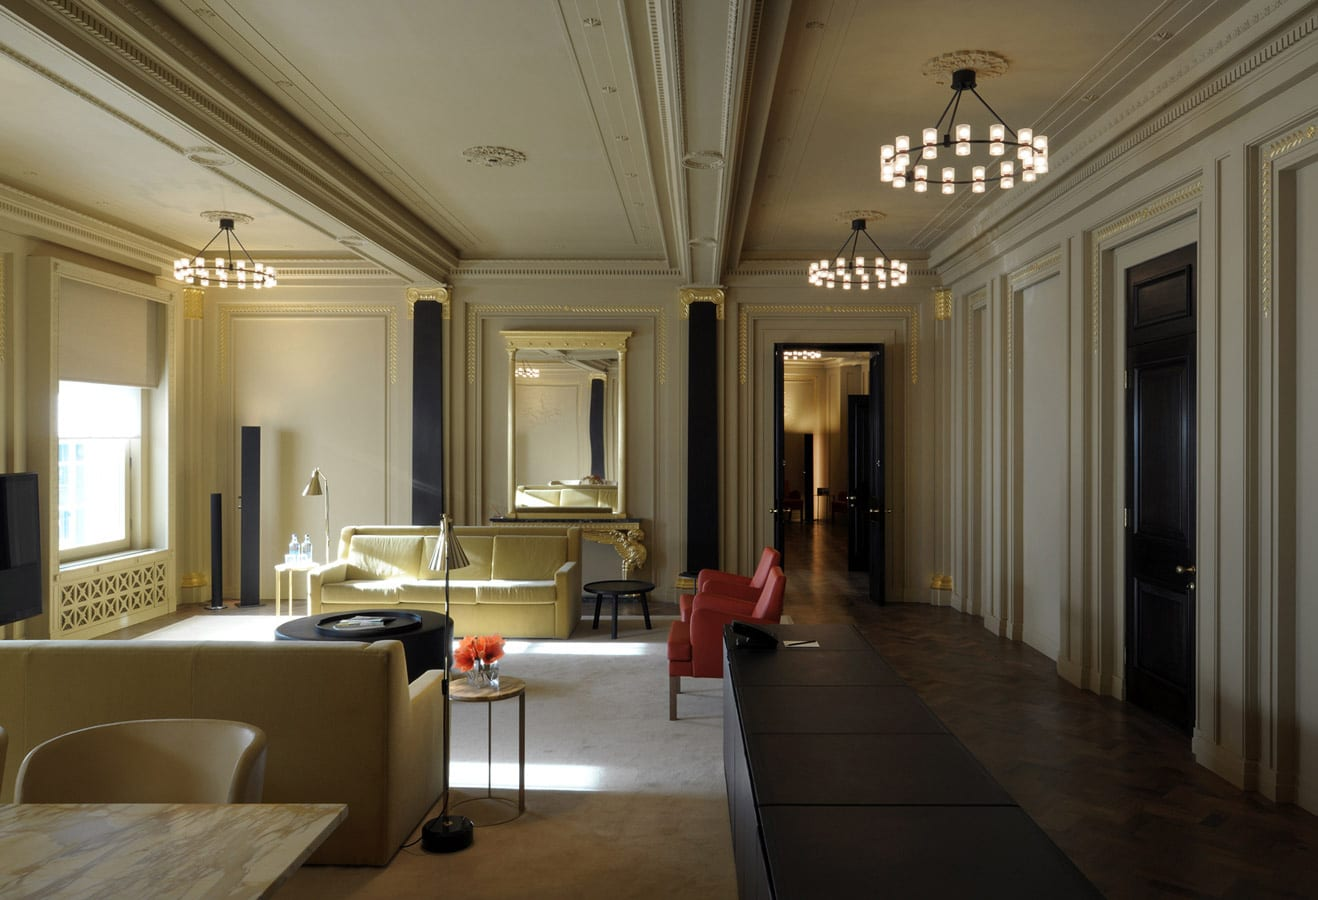 Hotel Café Royal in London by David Chipperfield | Yellowtrace